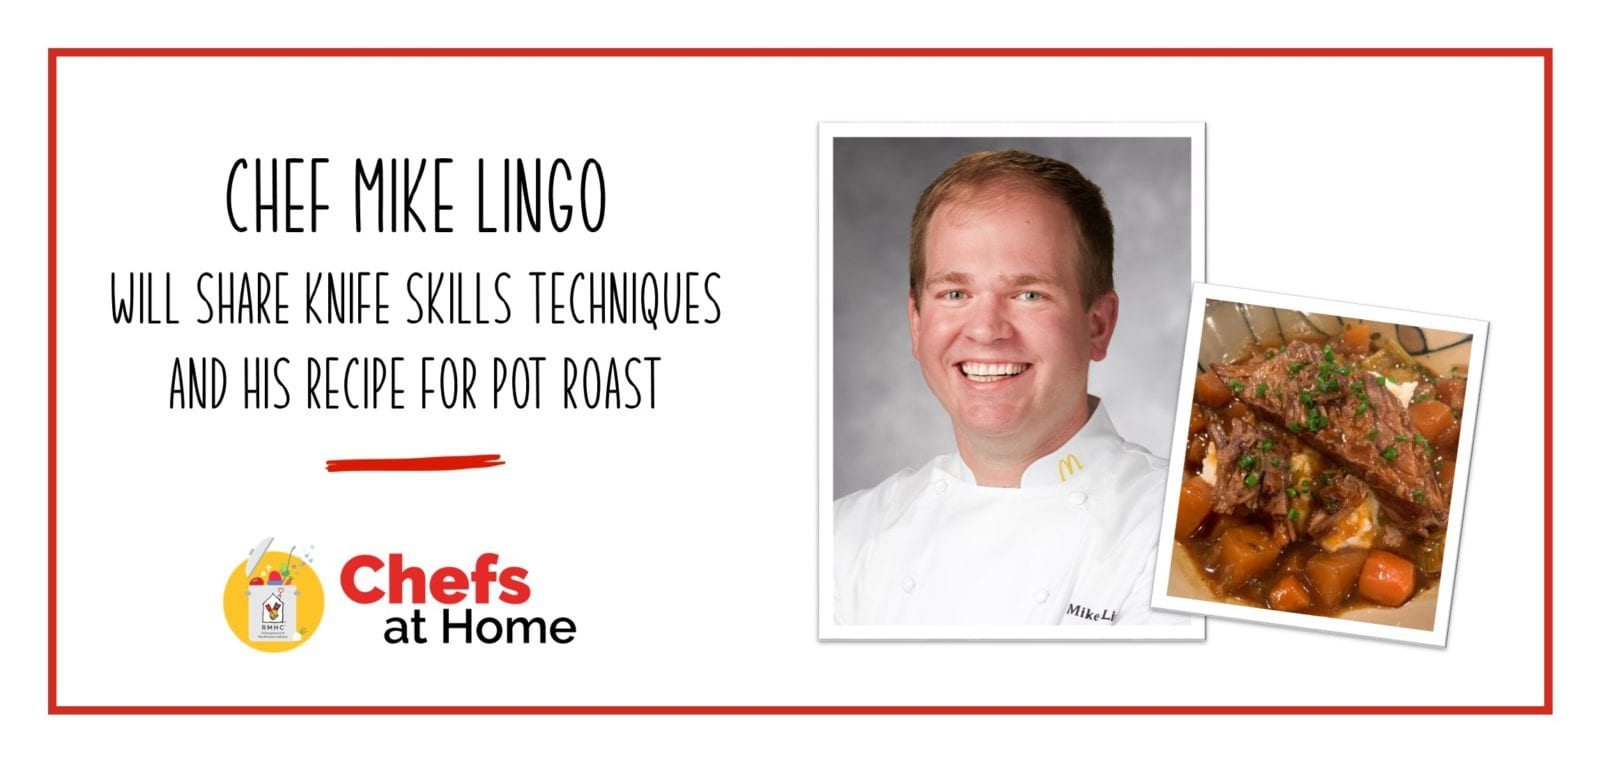 Photo of Chef Mike Lingo next to a plate of pot roast